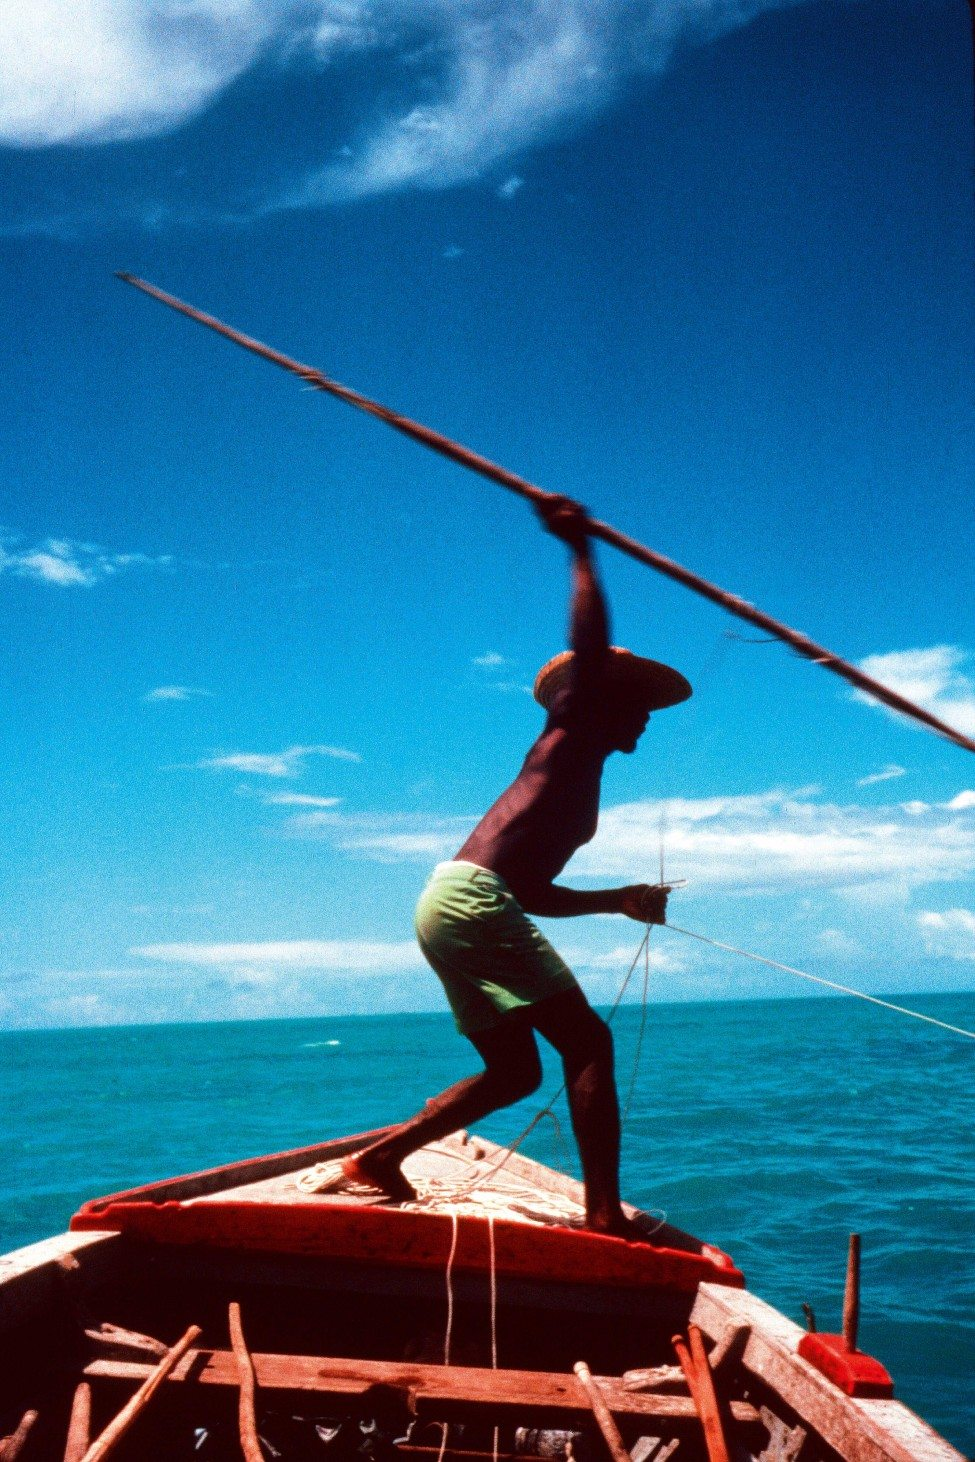 A turtle hunter aiming a harpoon at an adult green turtle at Cosmoledo Atoll in 1982. The harpoon head, which is attached to a cord held by the hunter, will enter the turtle's carapace and dislodge from the 'baton'. The hunter will then reel in the turtle by the cord.<br /> Photo by Jeanne Mortimer